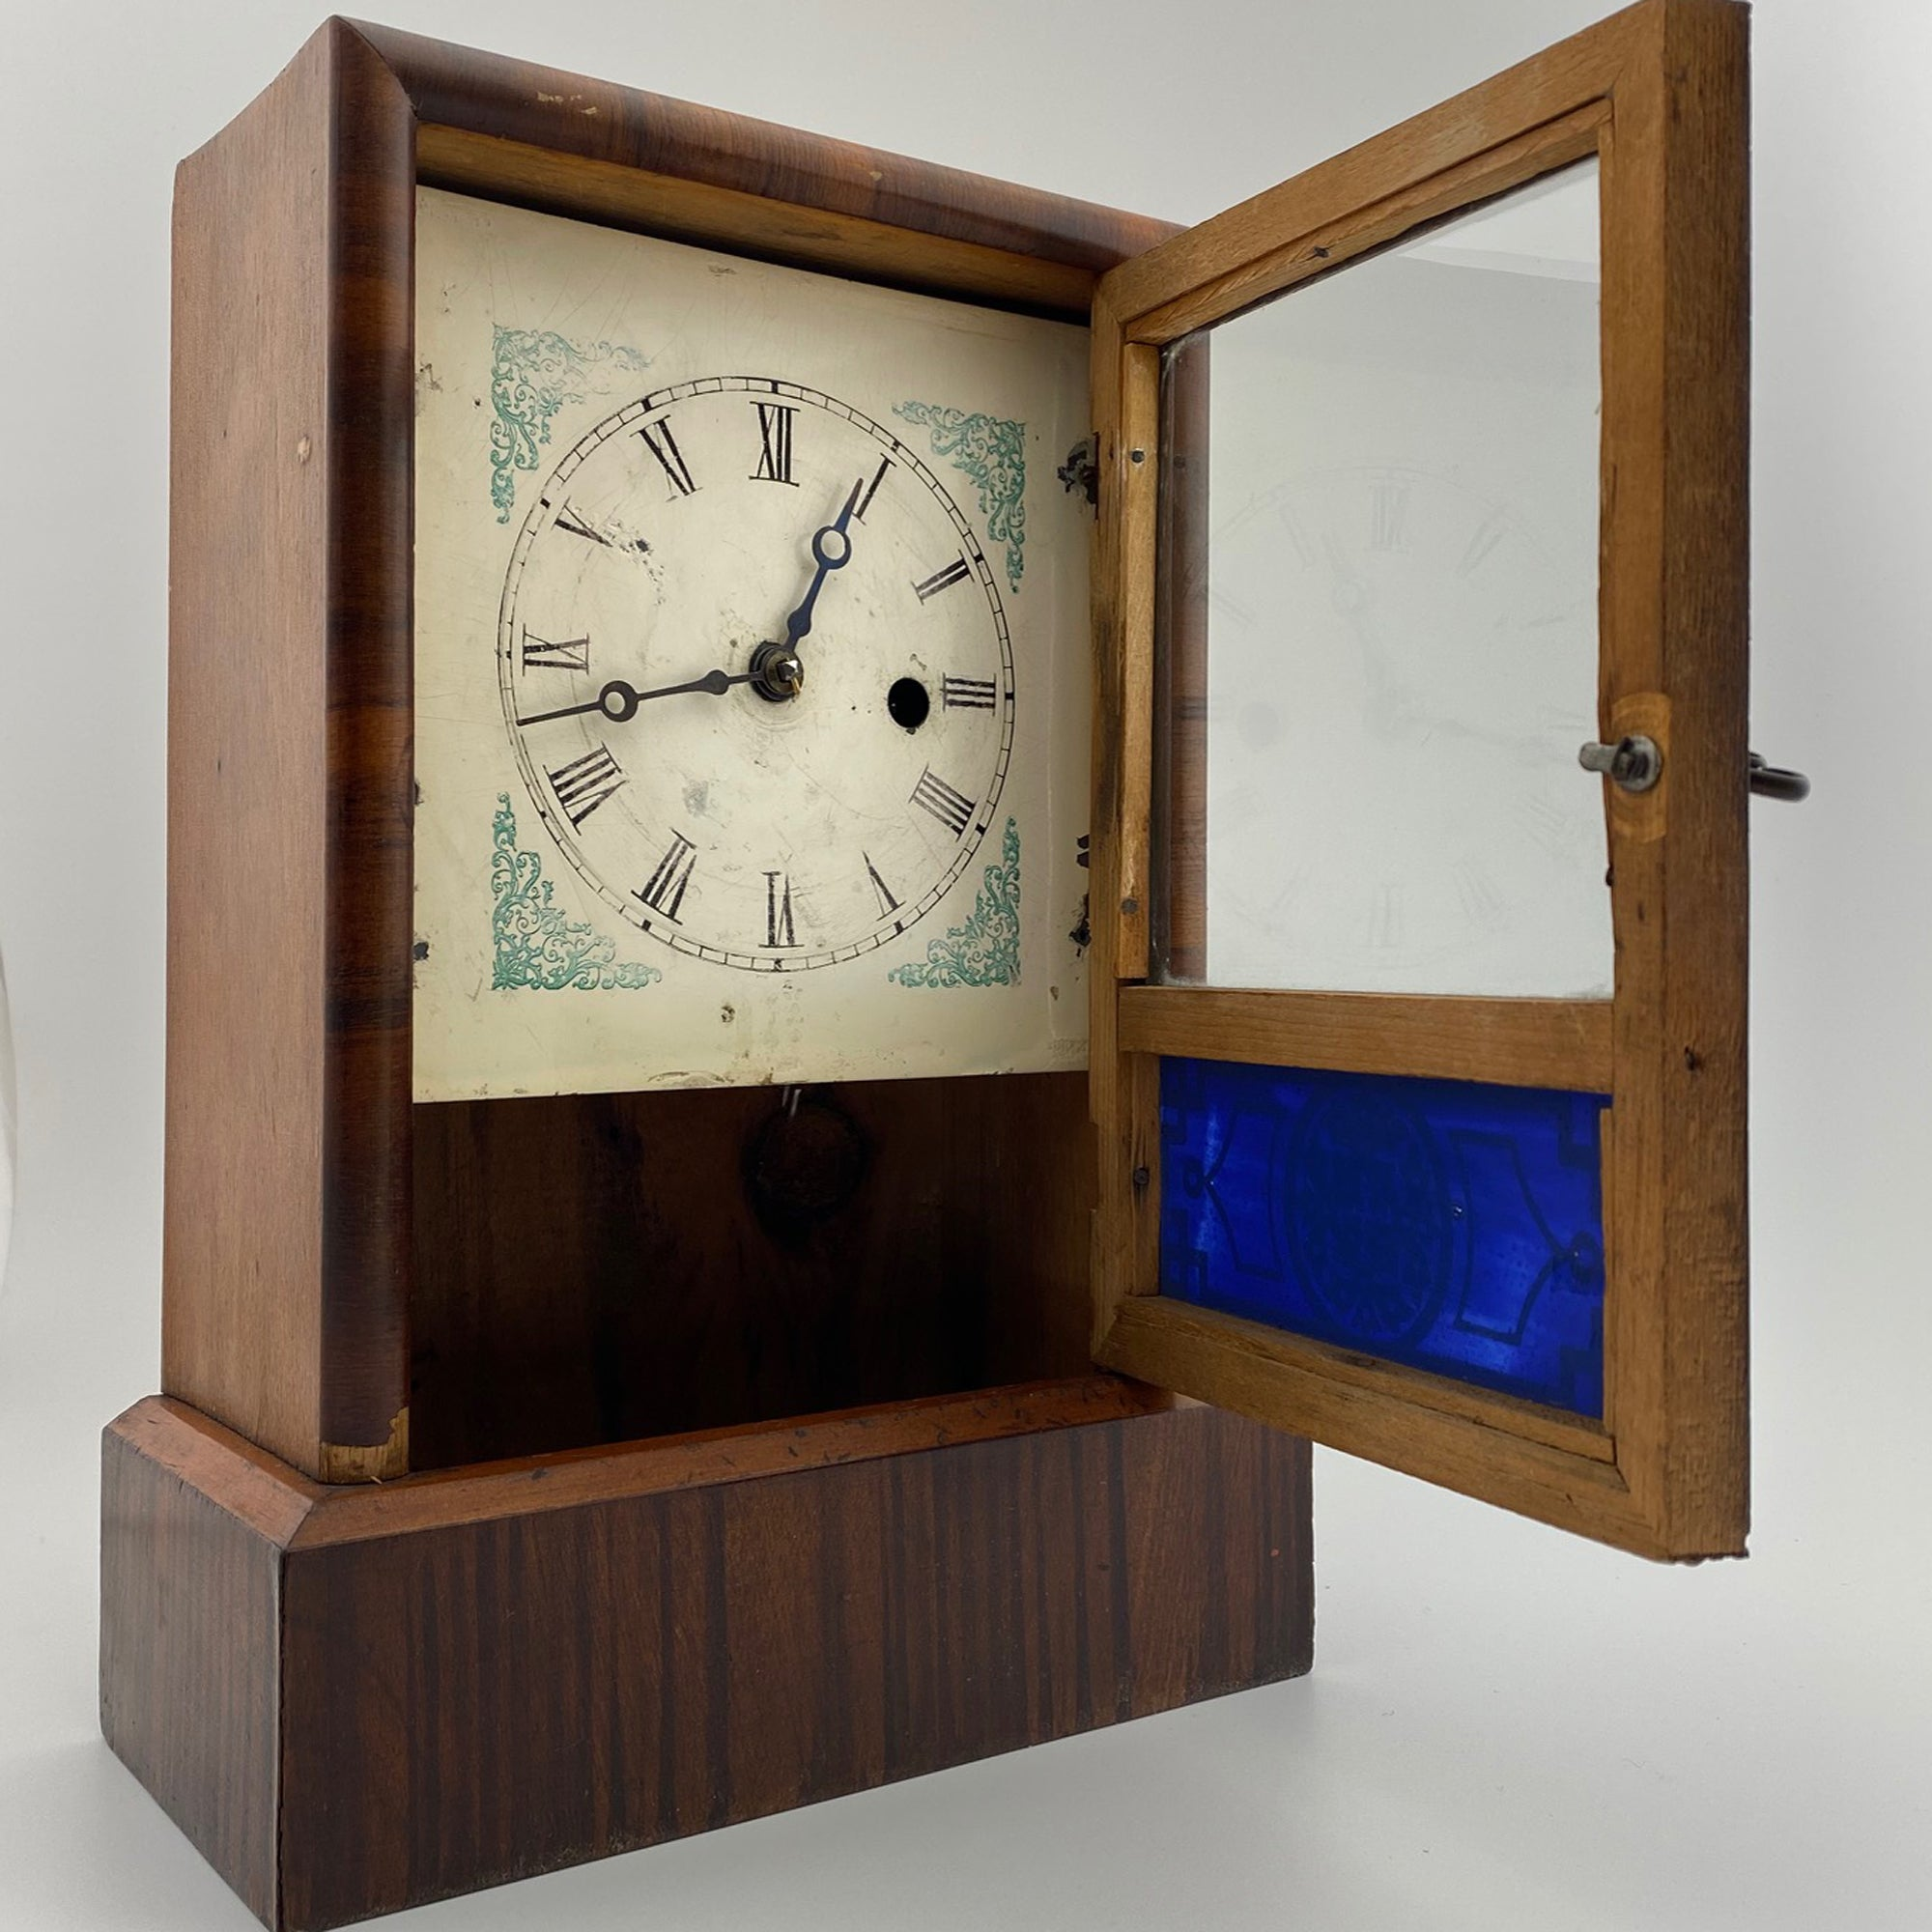 1880s Rosewood 30 Hour Shelf Clock retailed by J. E. Piper, Launceston